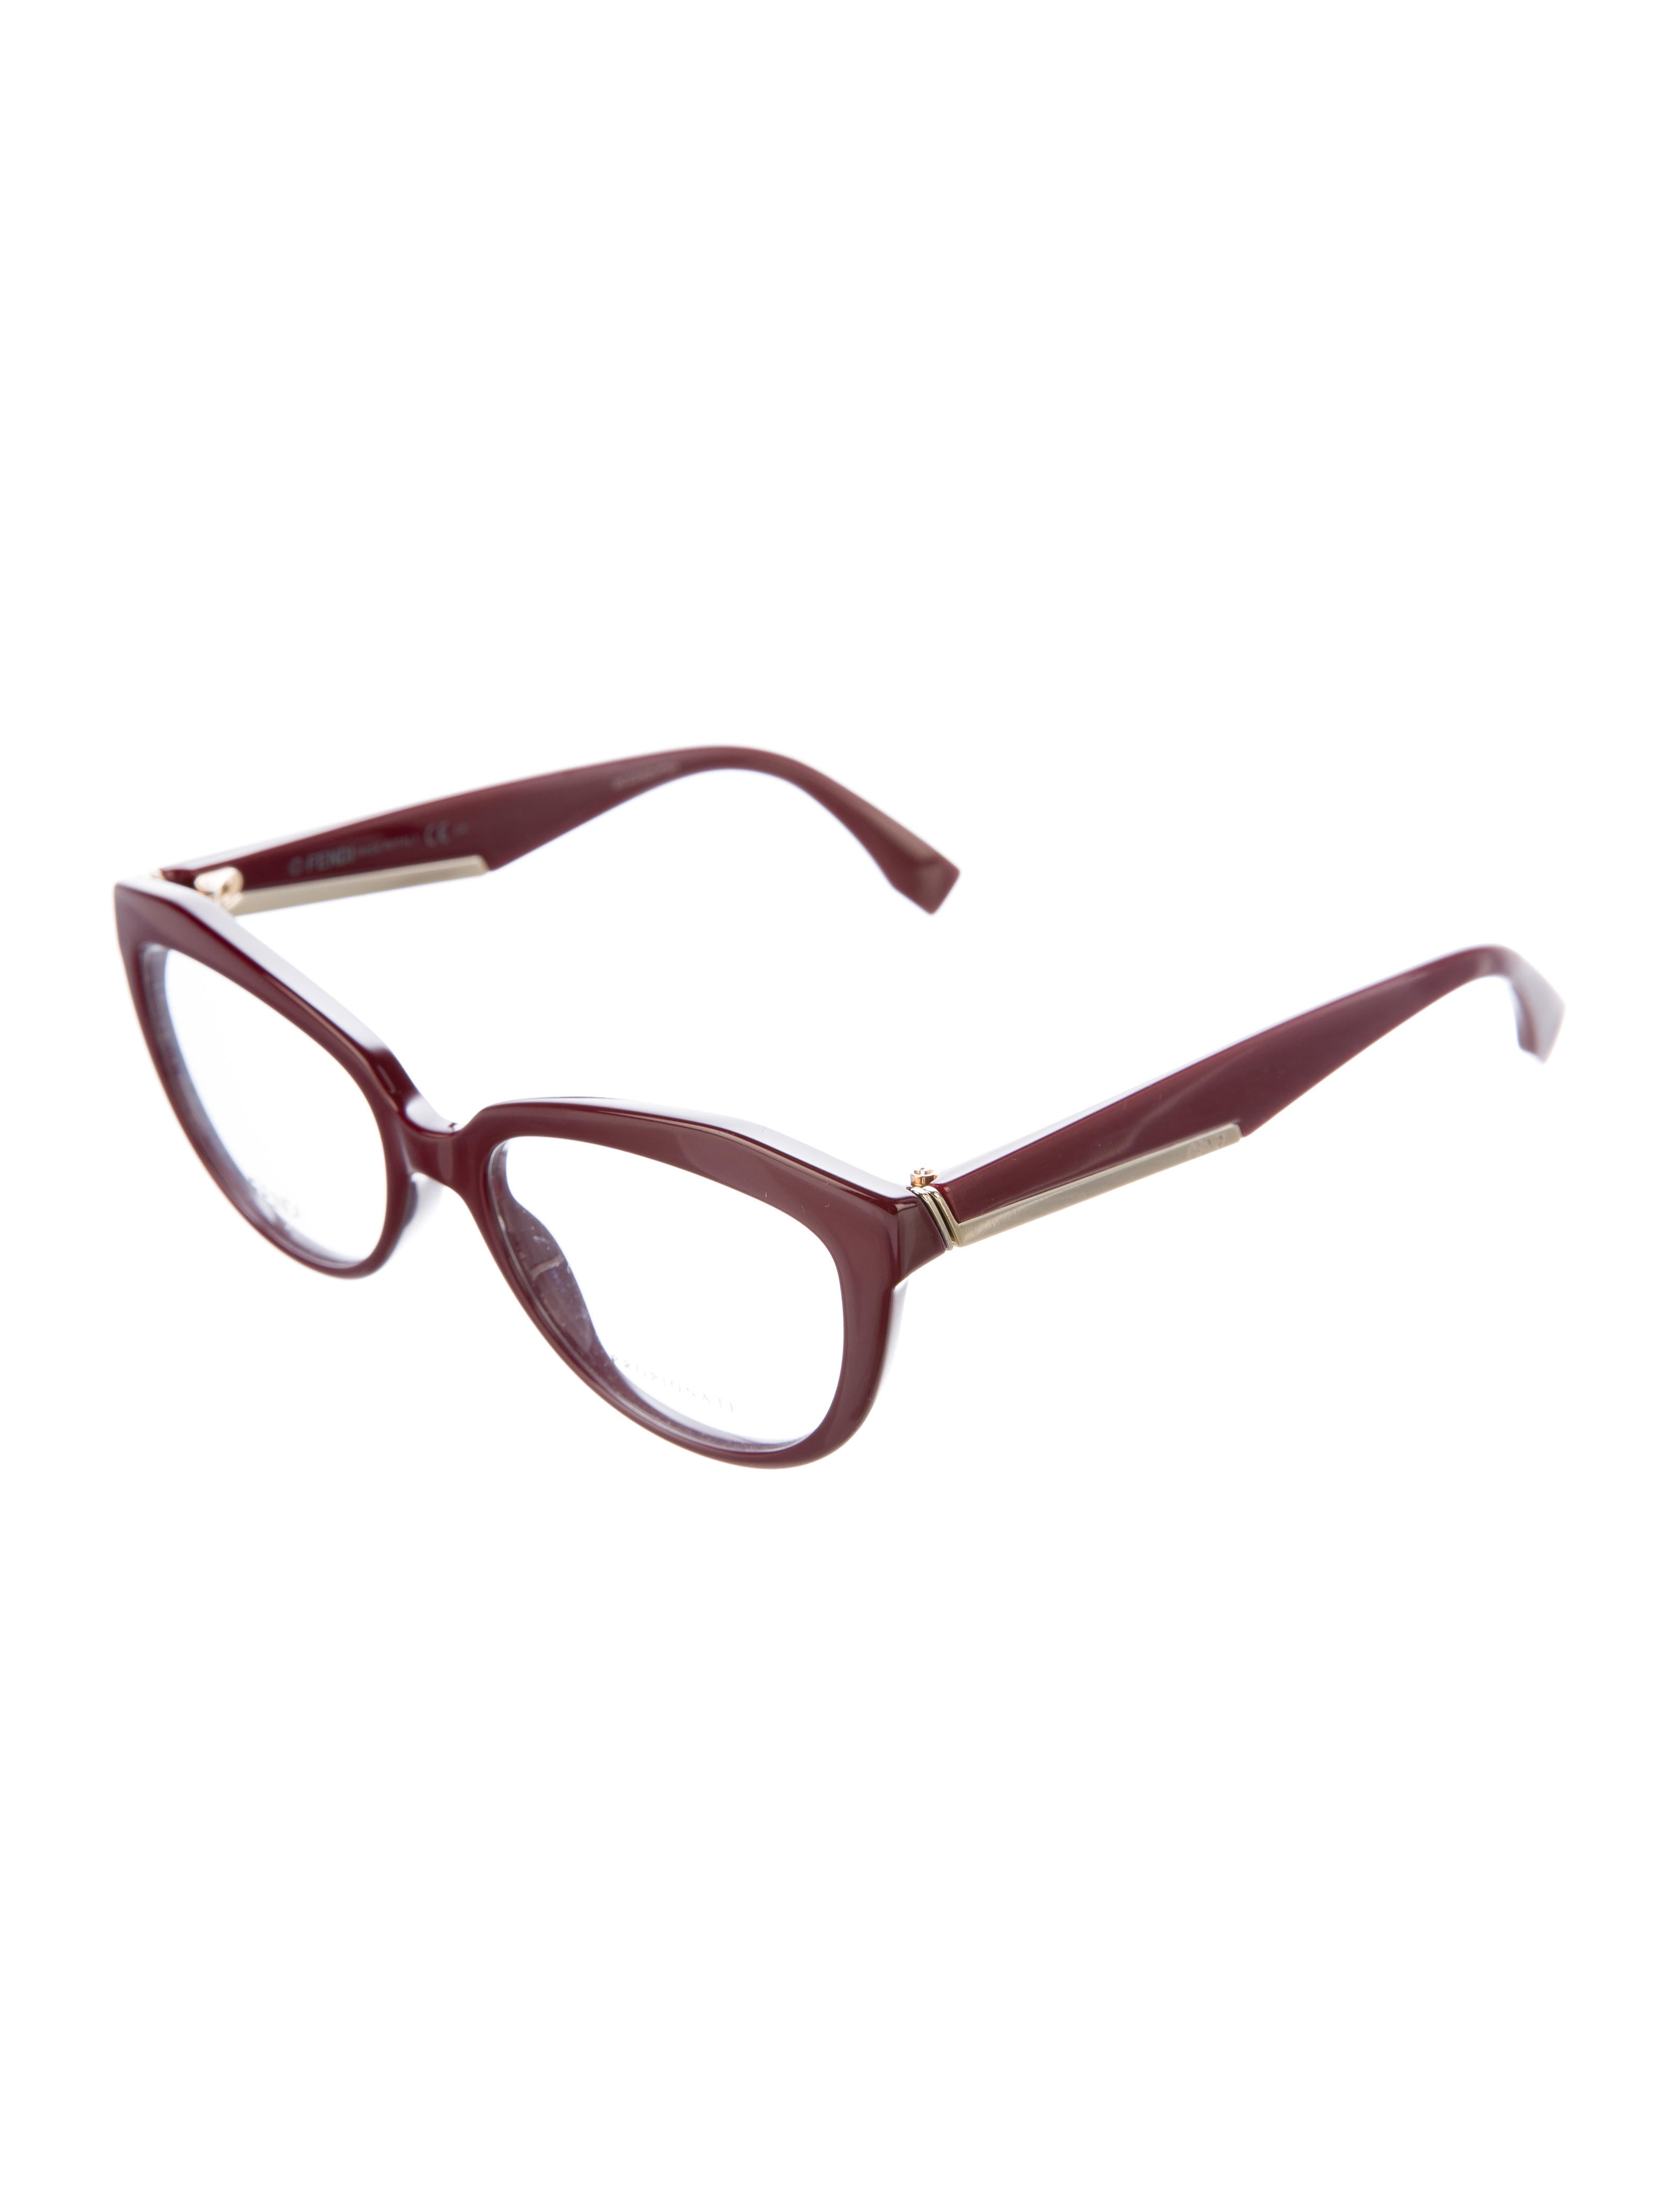 69c8db0f68e Fendi Cat Eye Eyeglass Frames - Bitterroot Public Library